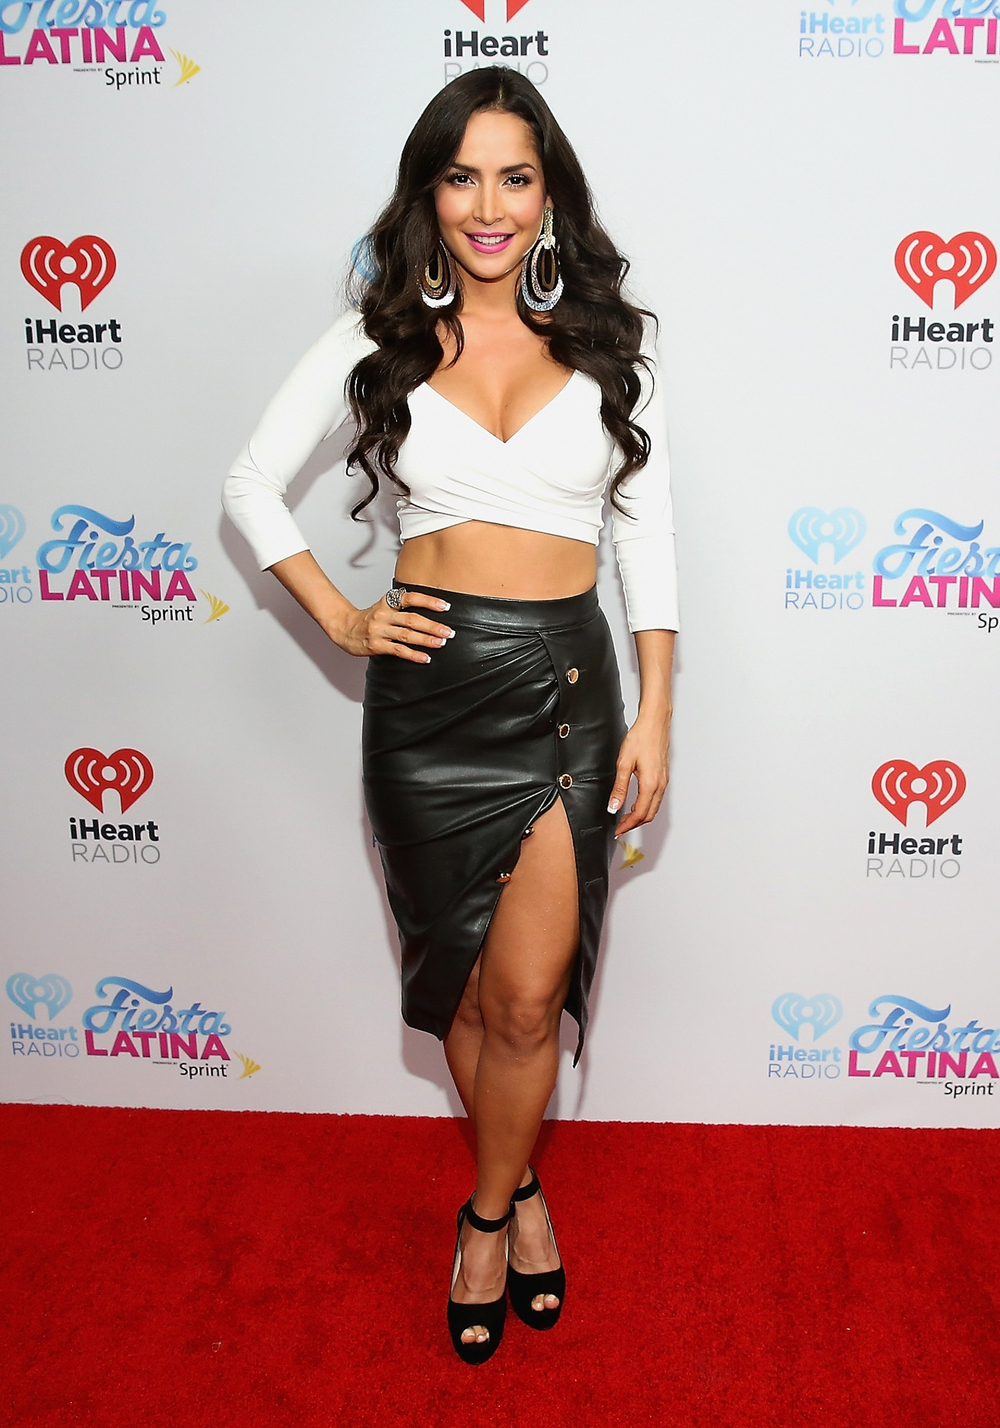 MIAMI, FL - NOVEMBER 07: Carmen Villalobos attends iHeartRadio Fiesta Latina presented by Sprint at American Airlines Arena on November 7, 2015 in Miami, Florida.  (Photo by Aaron Davidson/Getty Images for iHeartMedia) *** Local Caption *** Carmen Villalobos